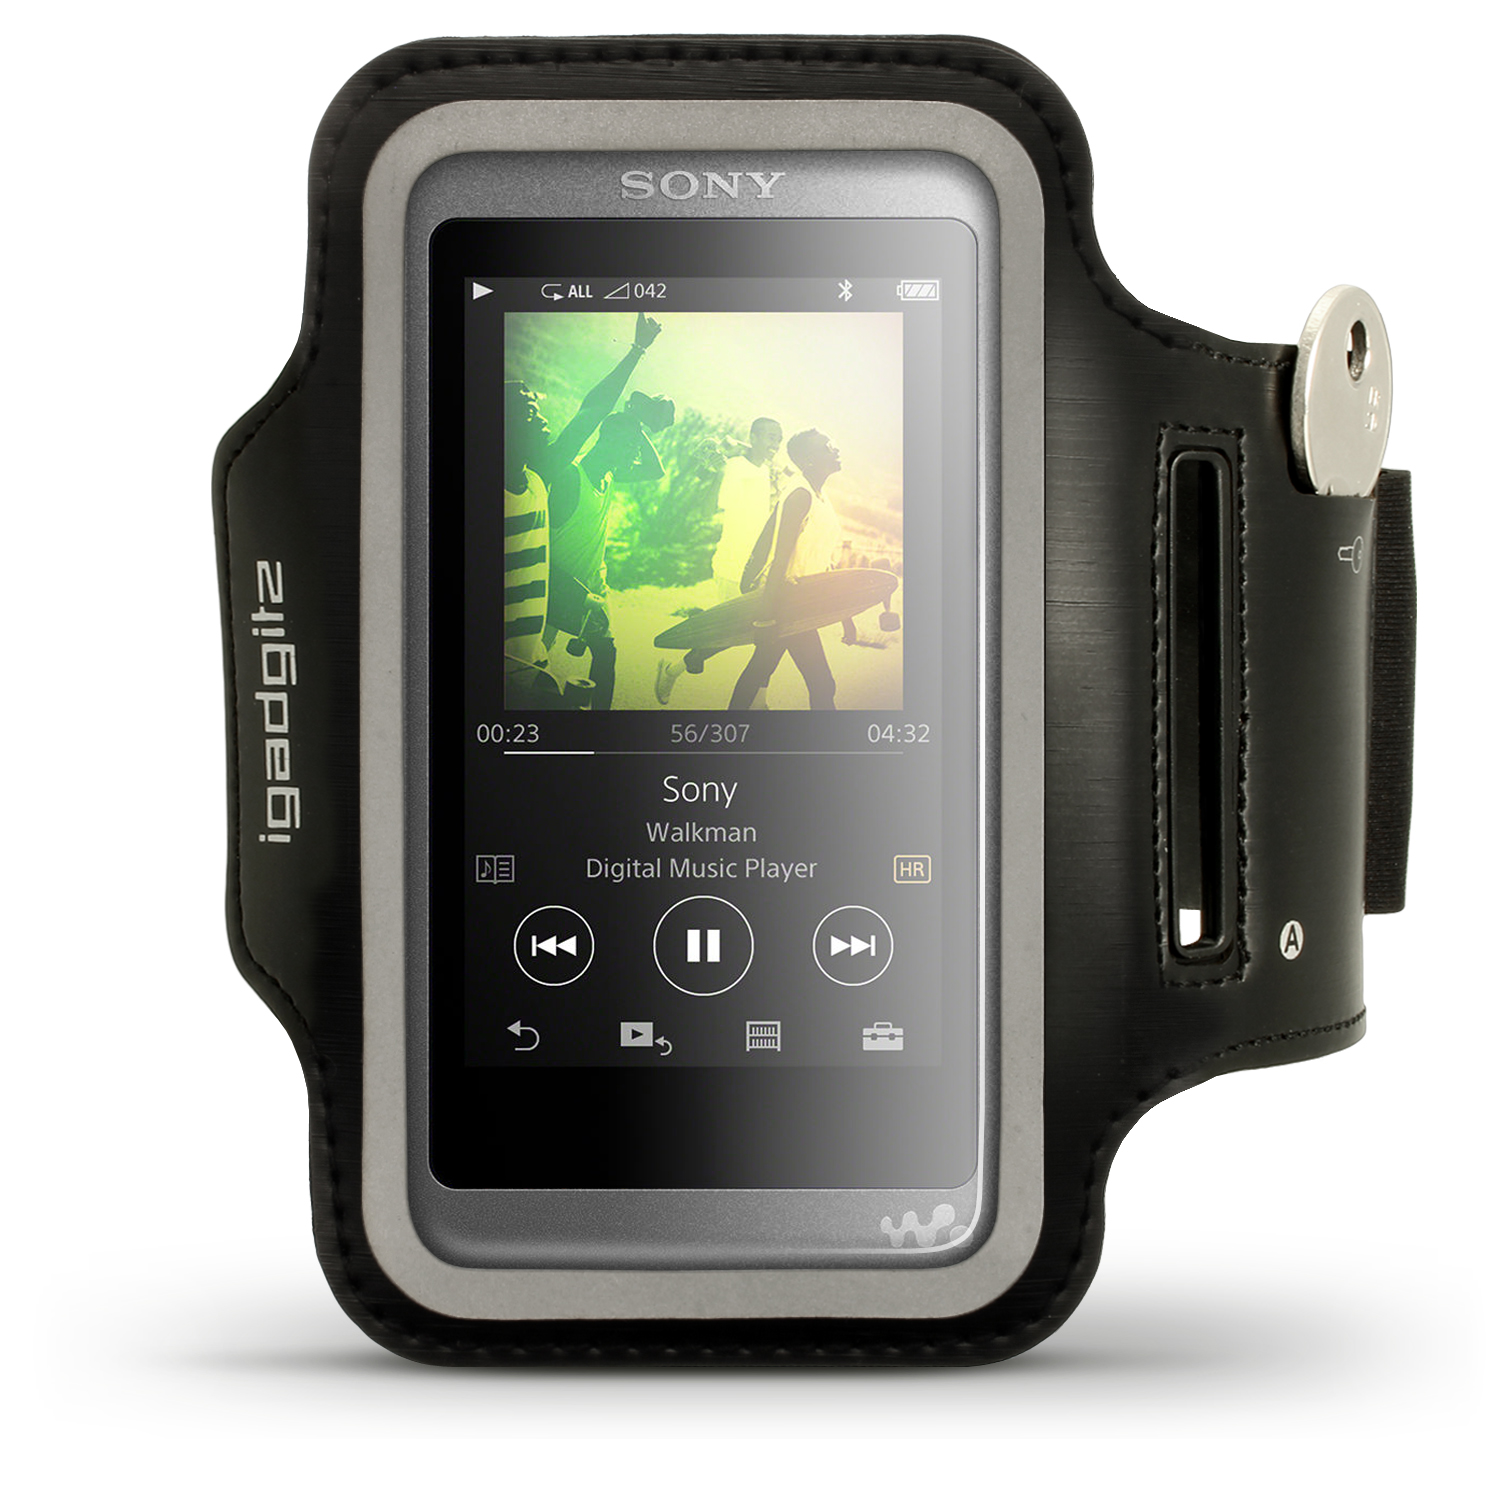 iGadgitz Reflective Black Sports Jogging Gym Armband for Sony Walkman NW-A35 NW-A40 MP3 Player with Key Slot